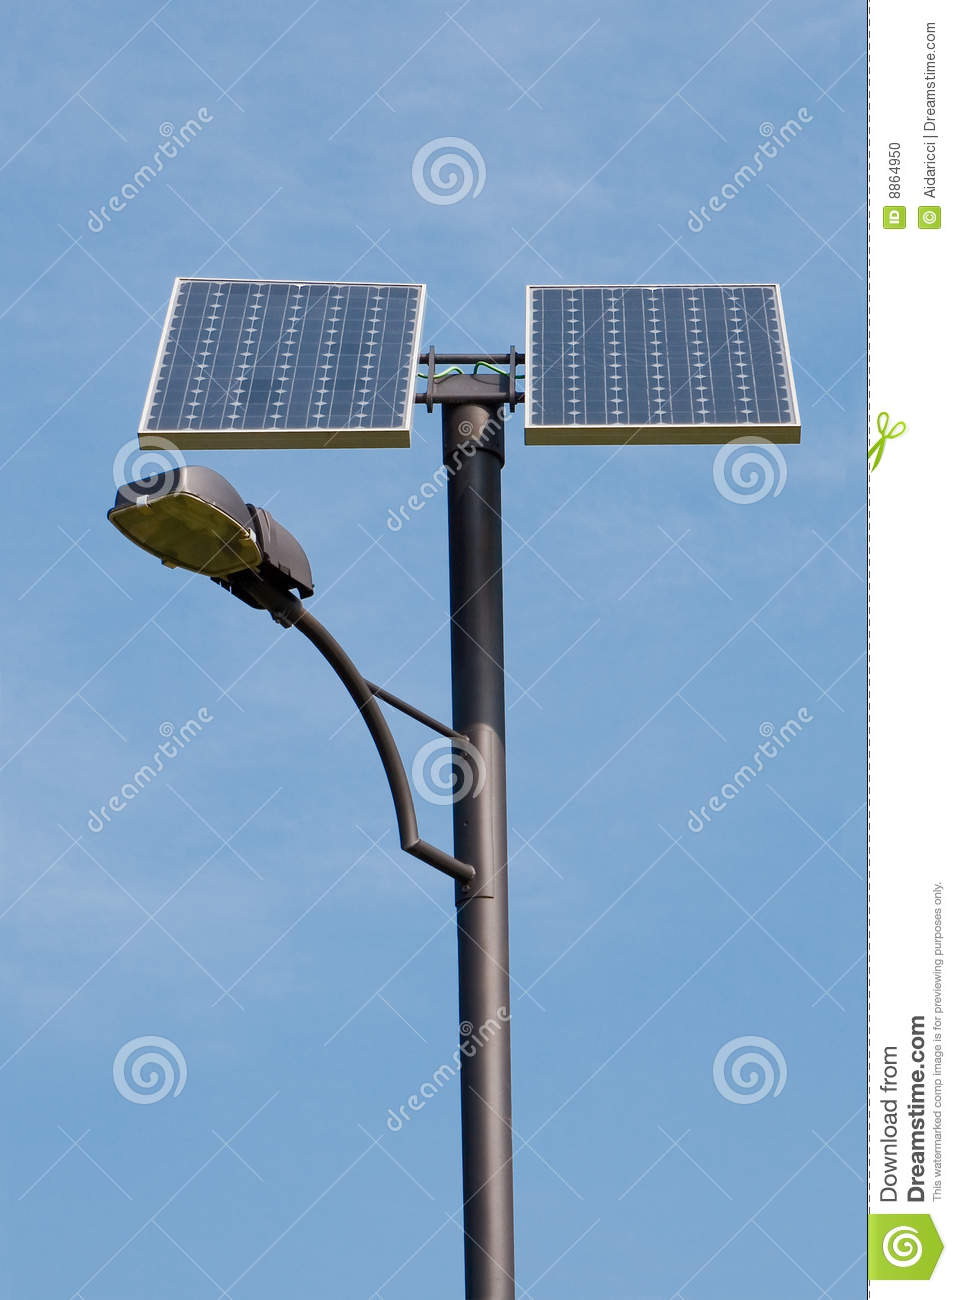 Solar Powered Lamp Post Stock Photo Image 8864950